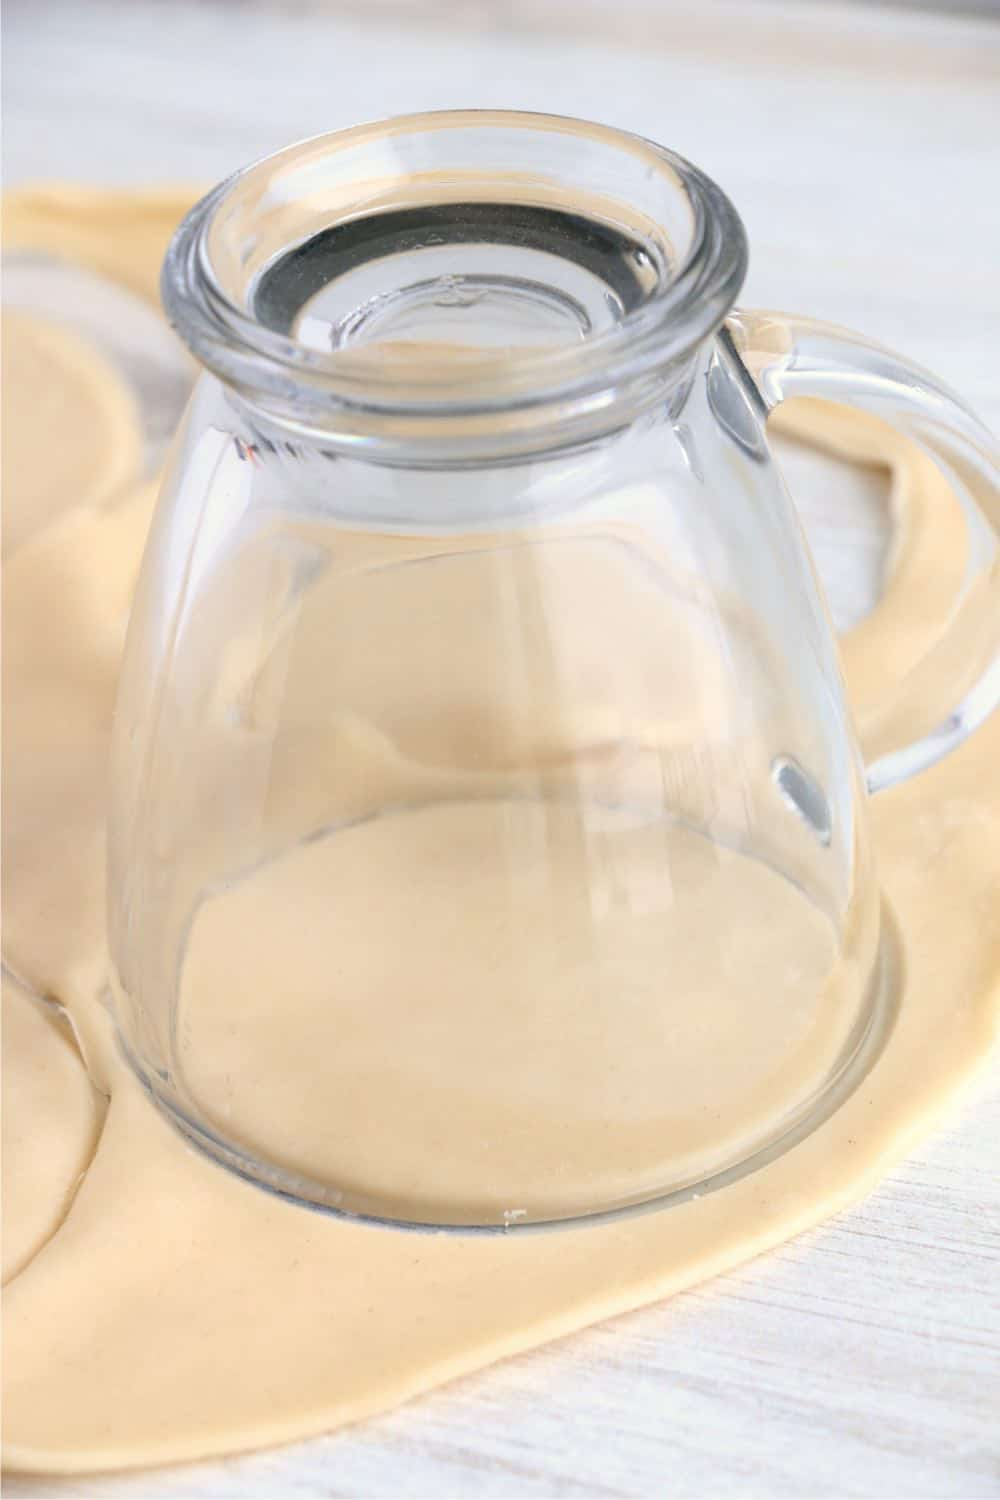 A clear glass being used to cut pie crust circles.